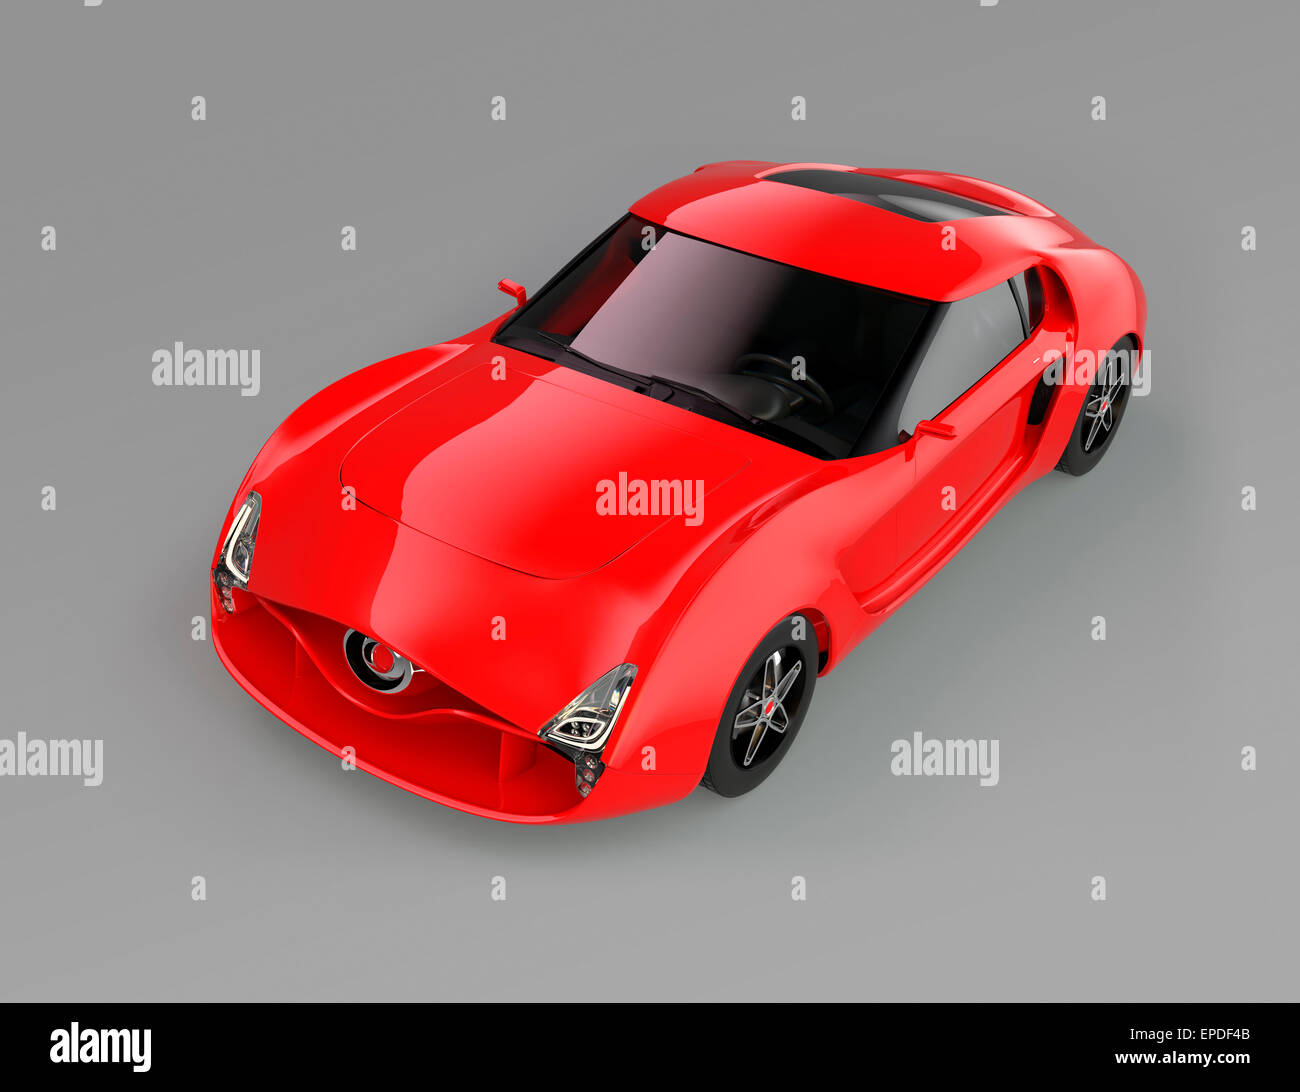 Red sports car isolated on gray background with clipping path. Original design. - Stock Image